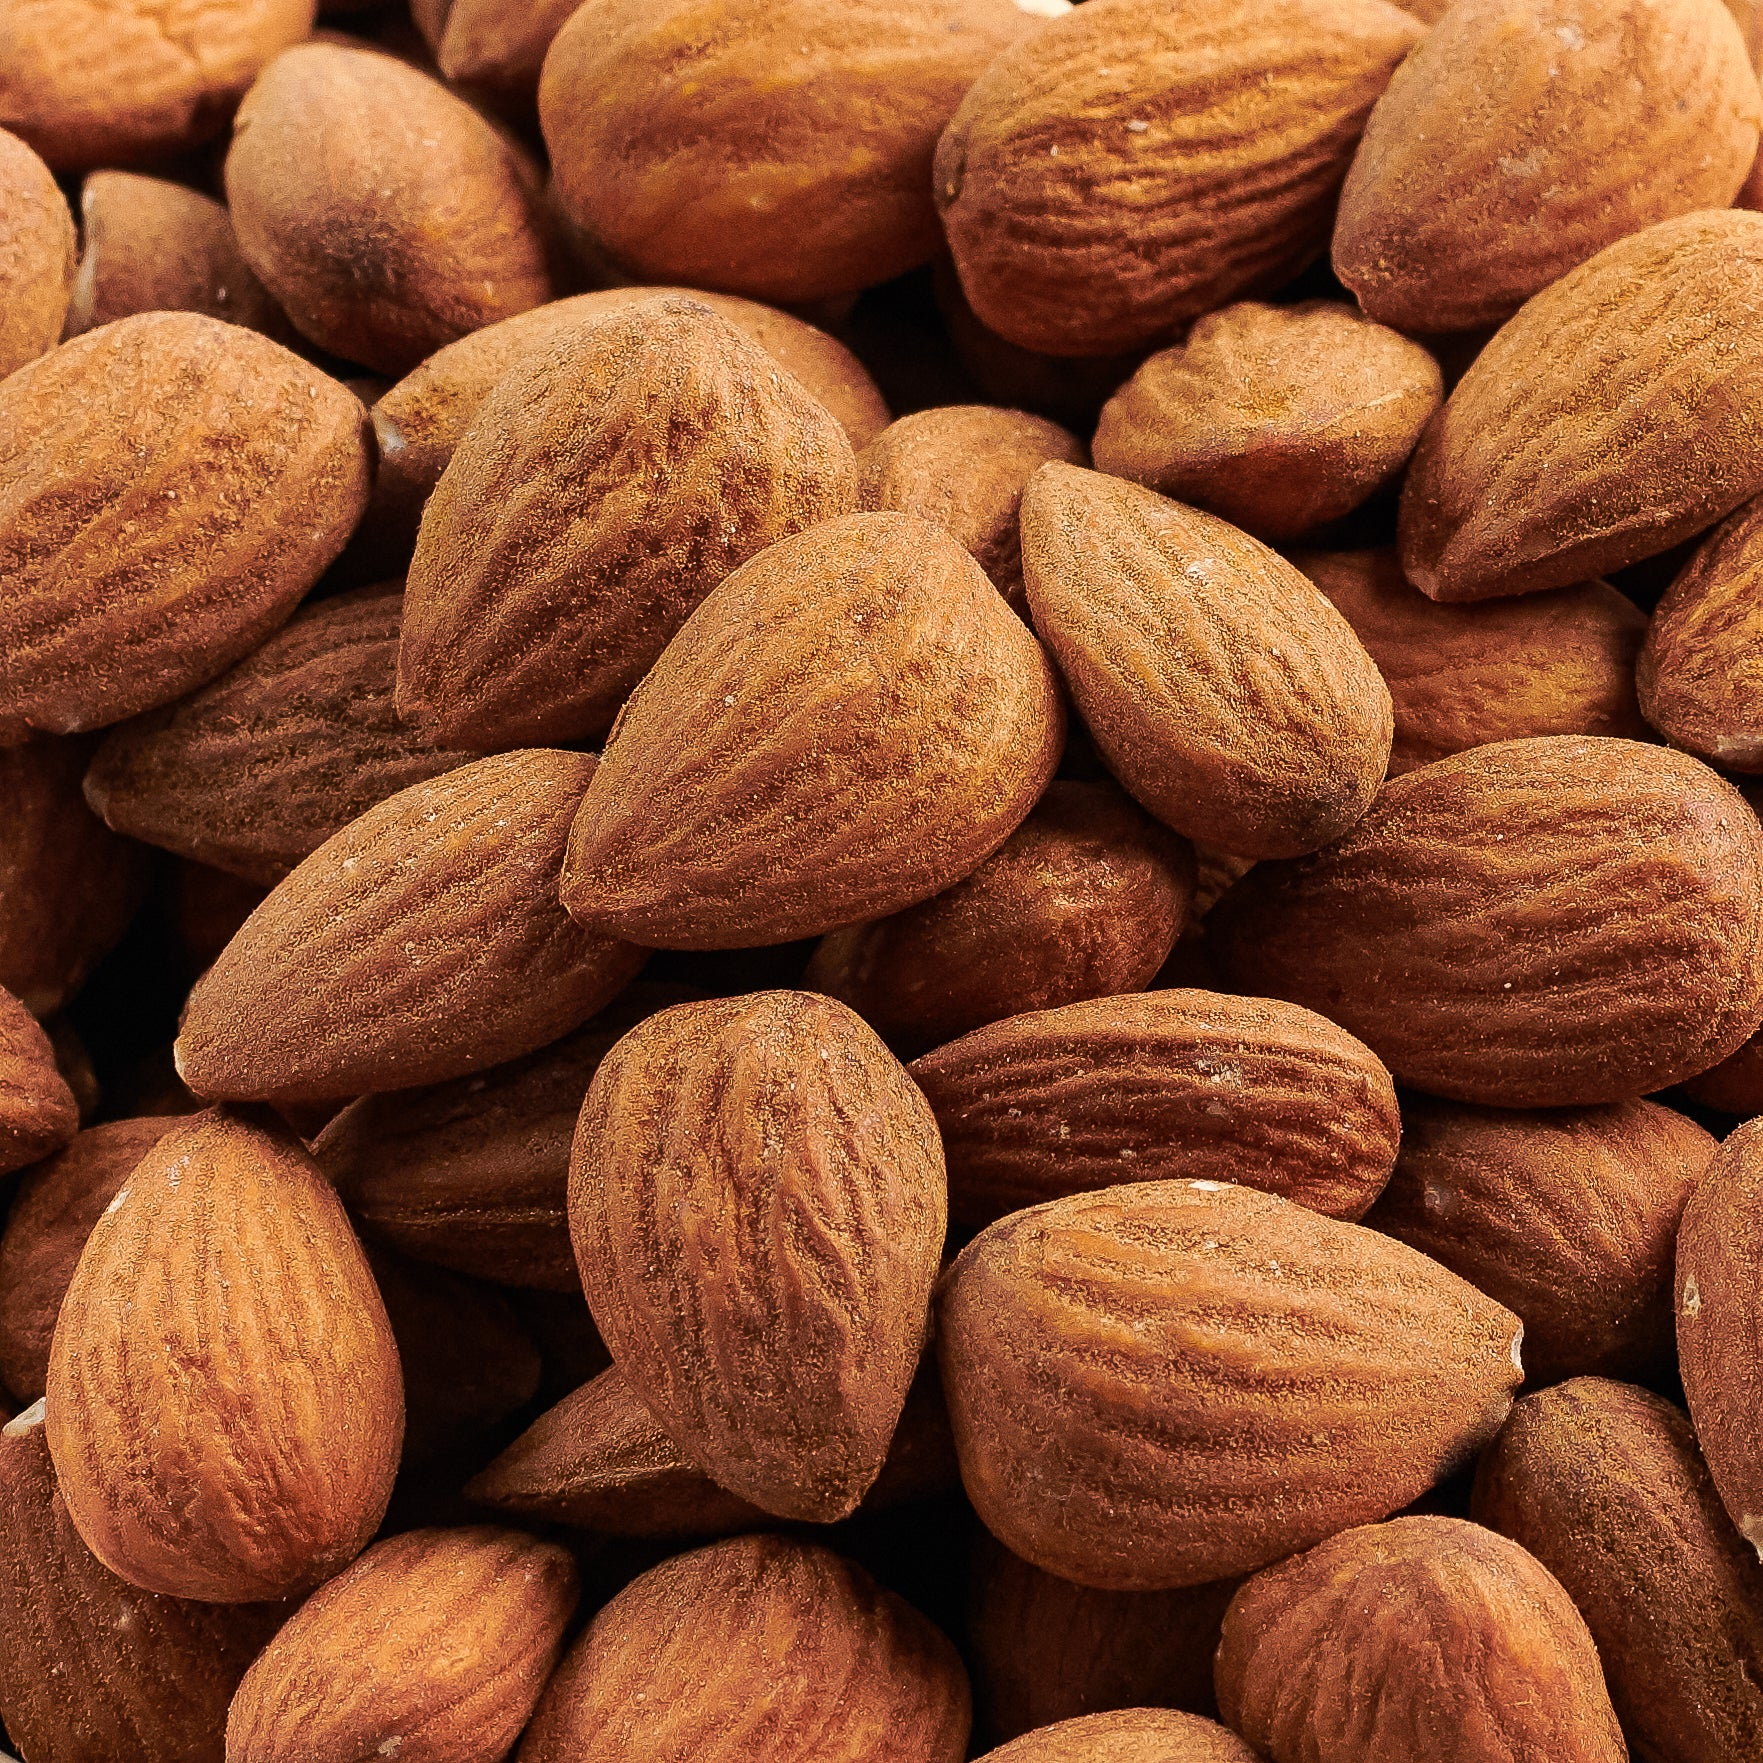 Natural Whole Almonds 27/30 - 50 Pound Bulk Case